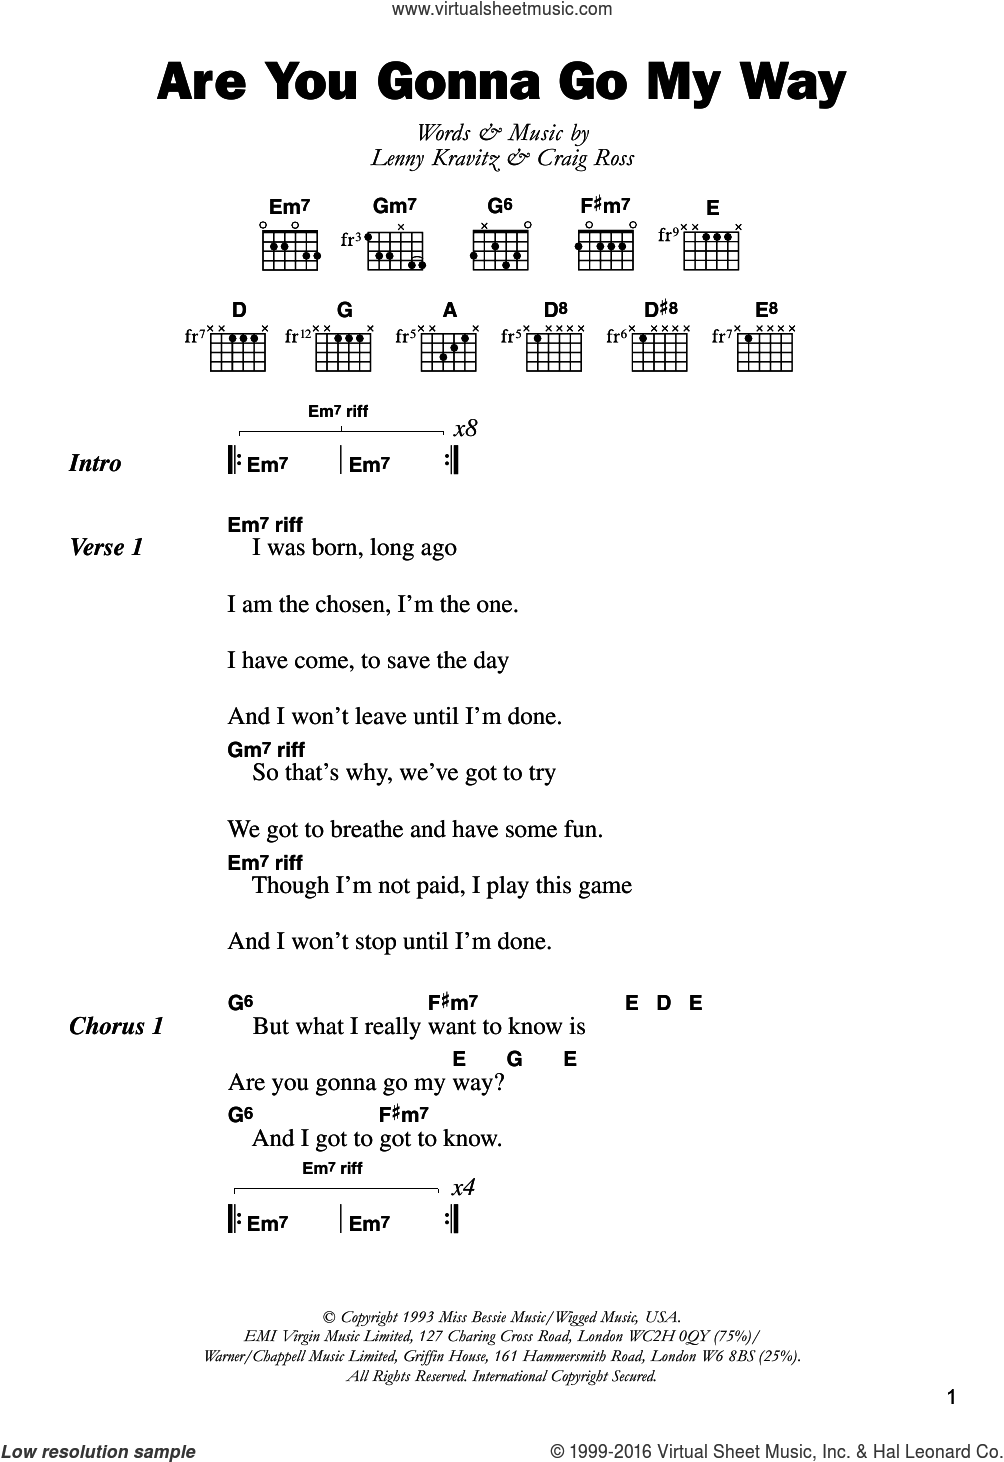 Are You Gonna Go My Way sheet music for guitar (chords) by Lenny Kravitz and Craig Ross, intermediate skill level